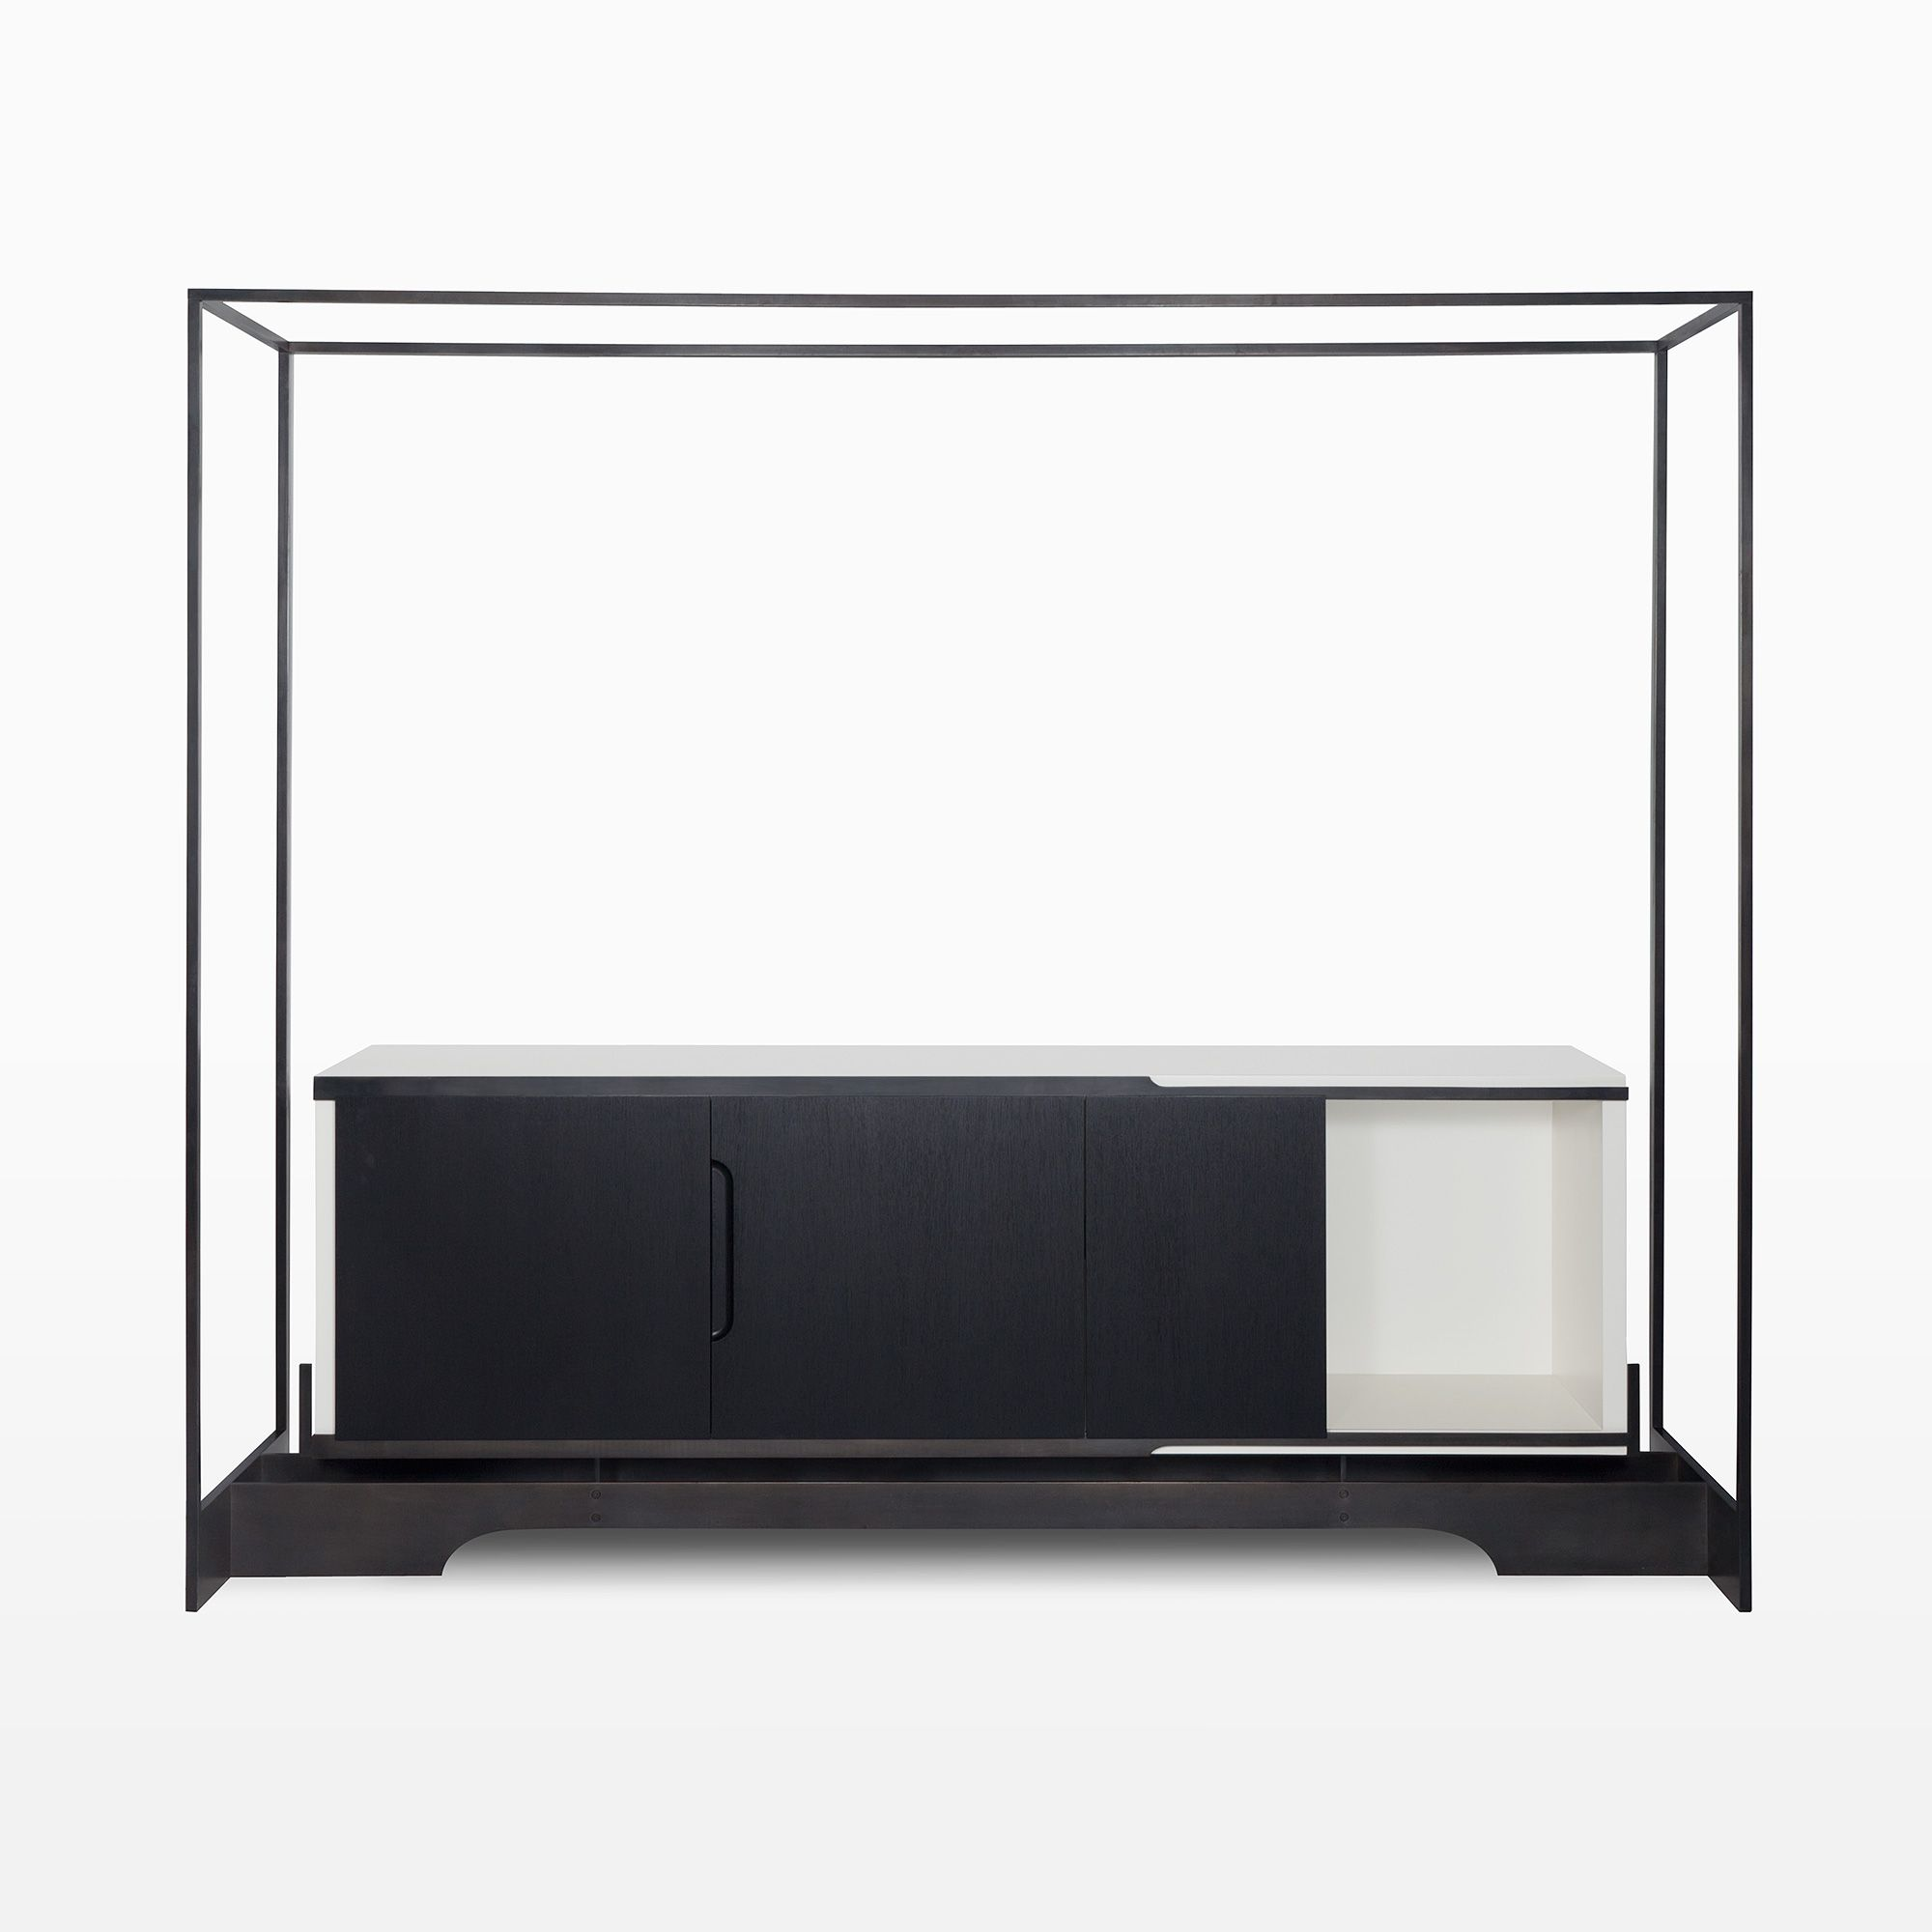 Glacier Sideboard Caste Design F Urniture Pinterest  # Meuble Design Zein Chloe